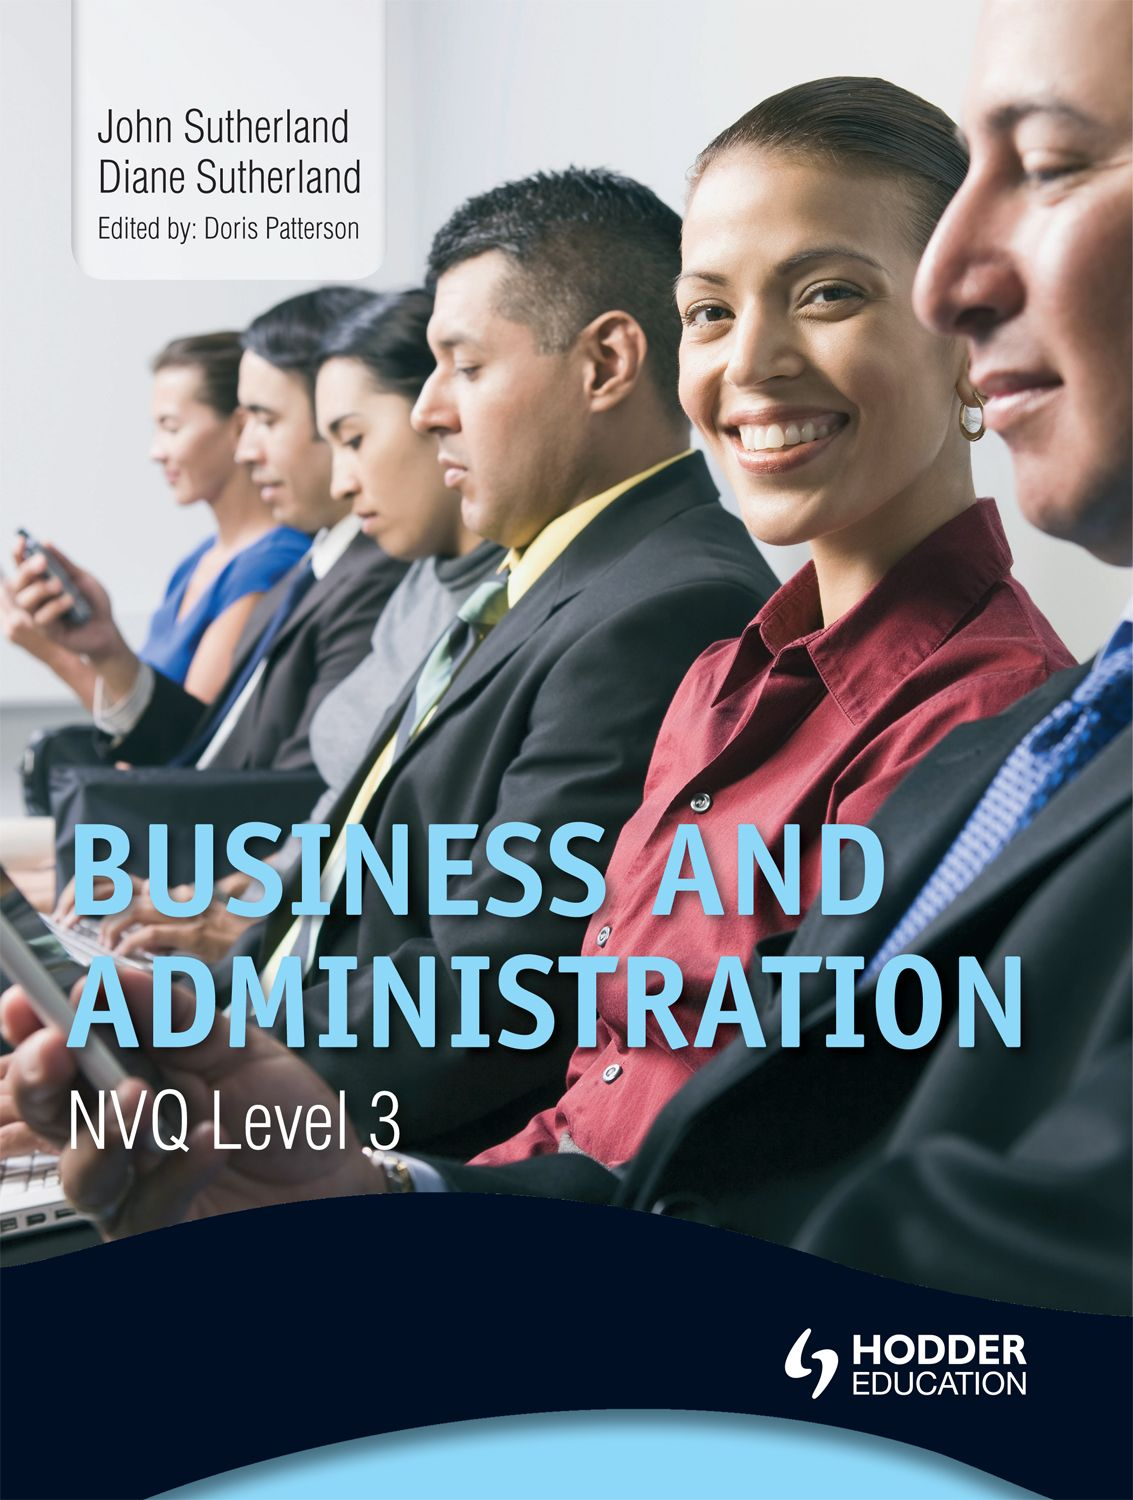 business administration level 2 unit Business and administration level 2 unit 1 assessment essay unit one: principles of personal responsibilities and working in a business environment assessment section 1 – know the employment rights and responsibilities of the employee and employer 1.